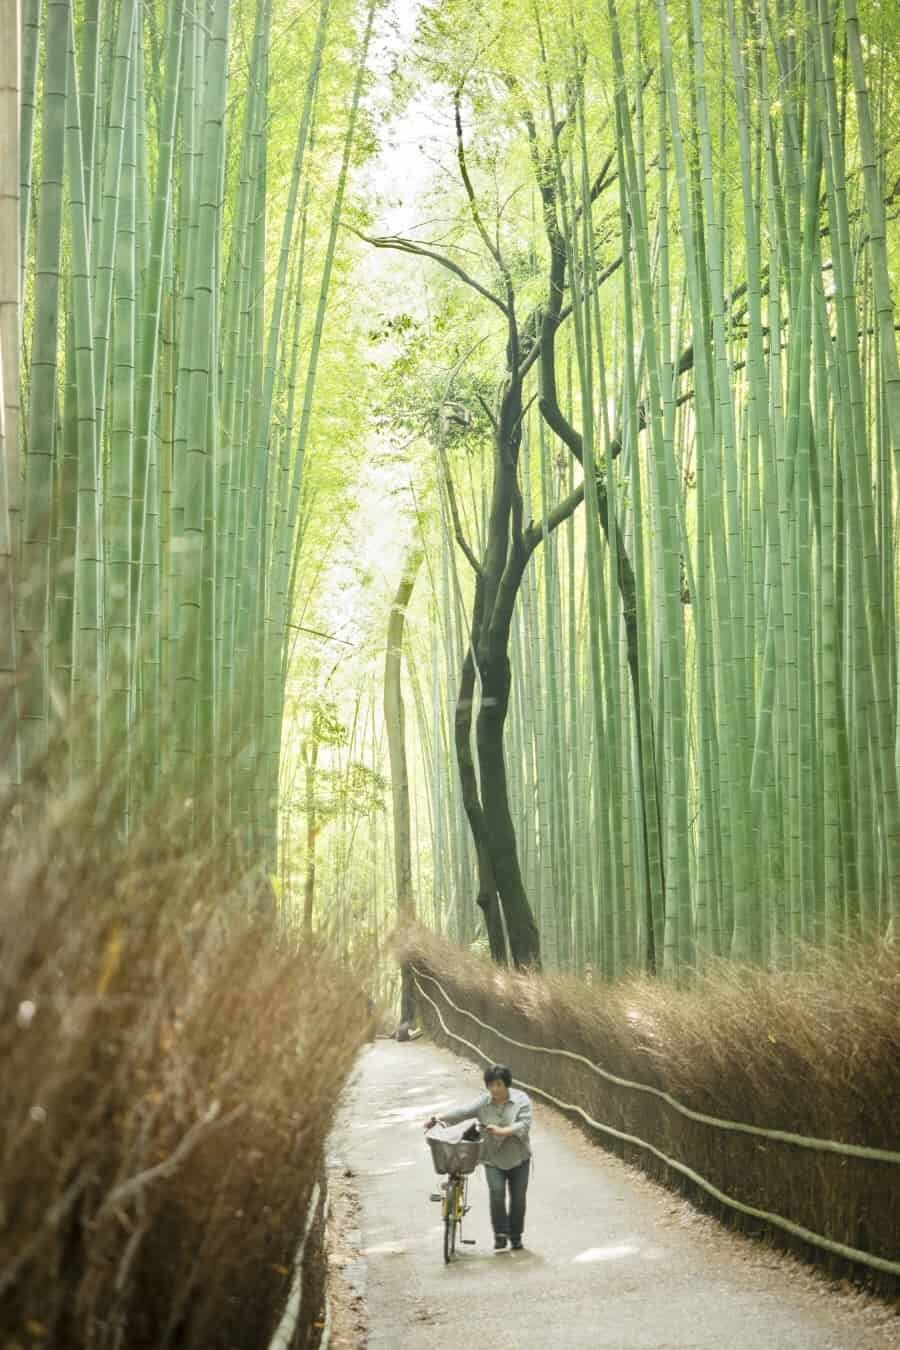 Arashiyama Bamboo Grove, Kyoto Japan - Improve your travel photography by The Wandering Lens